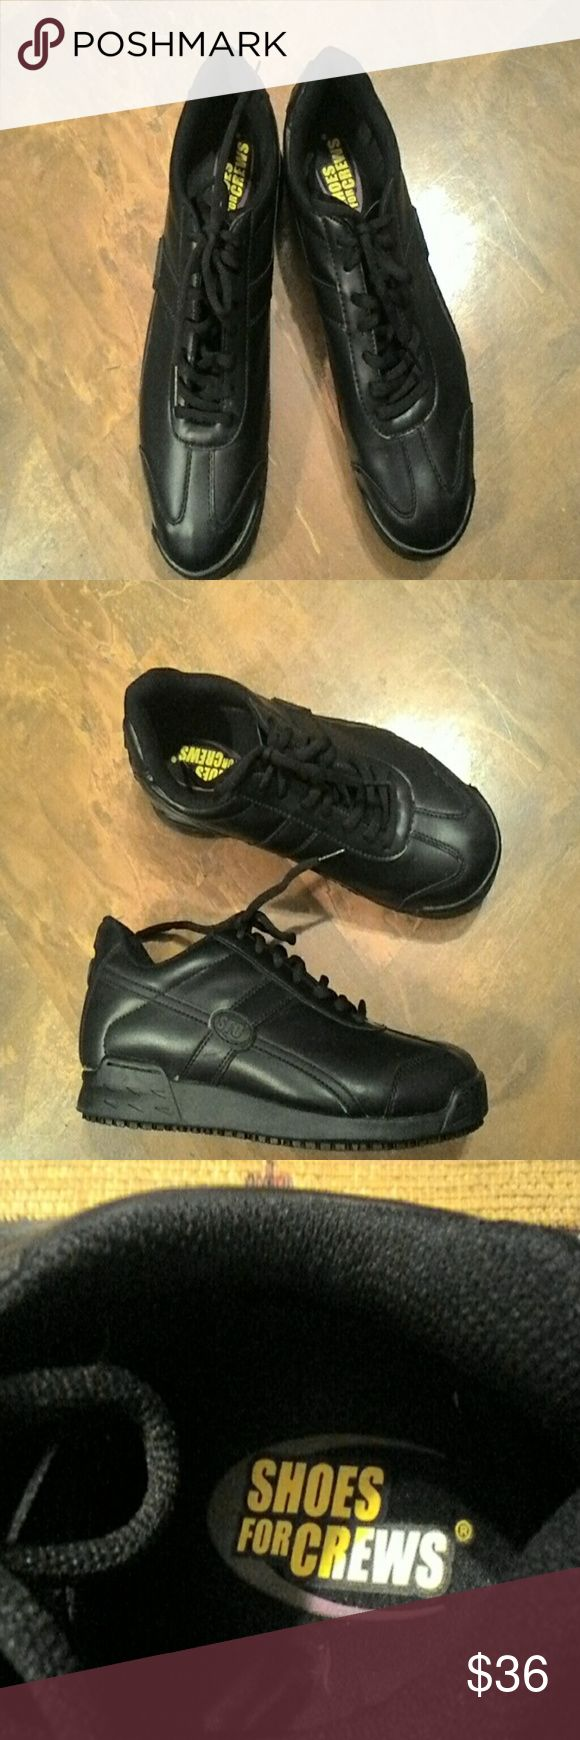 """""""Shoes For Crews""""Men's Black Safety Shoes SZ.10 Black slip and oil resistant occupational work safety sneakers,padded tongue and heel,black laces,rubber soles.Like New,very good condition. Shoes For Crews Shoes Sneakers"""